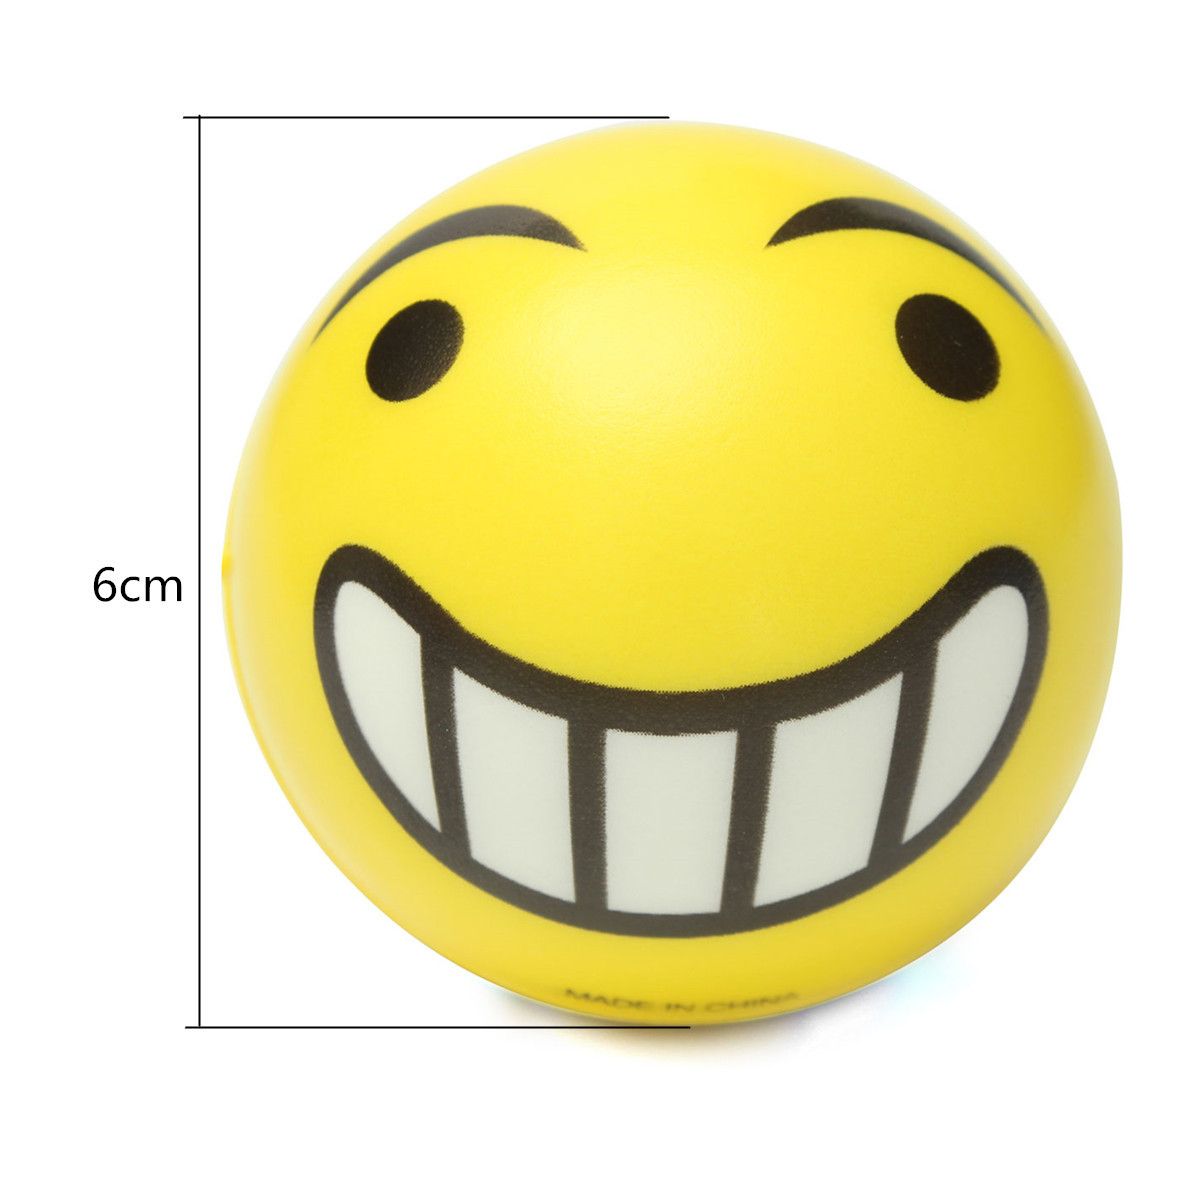 Squishy Emoji Smiley Face Anti Stress Relief Autism Mood Squeeze Ball Reliever Toy Sale ...